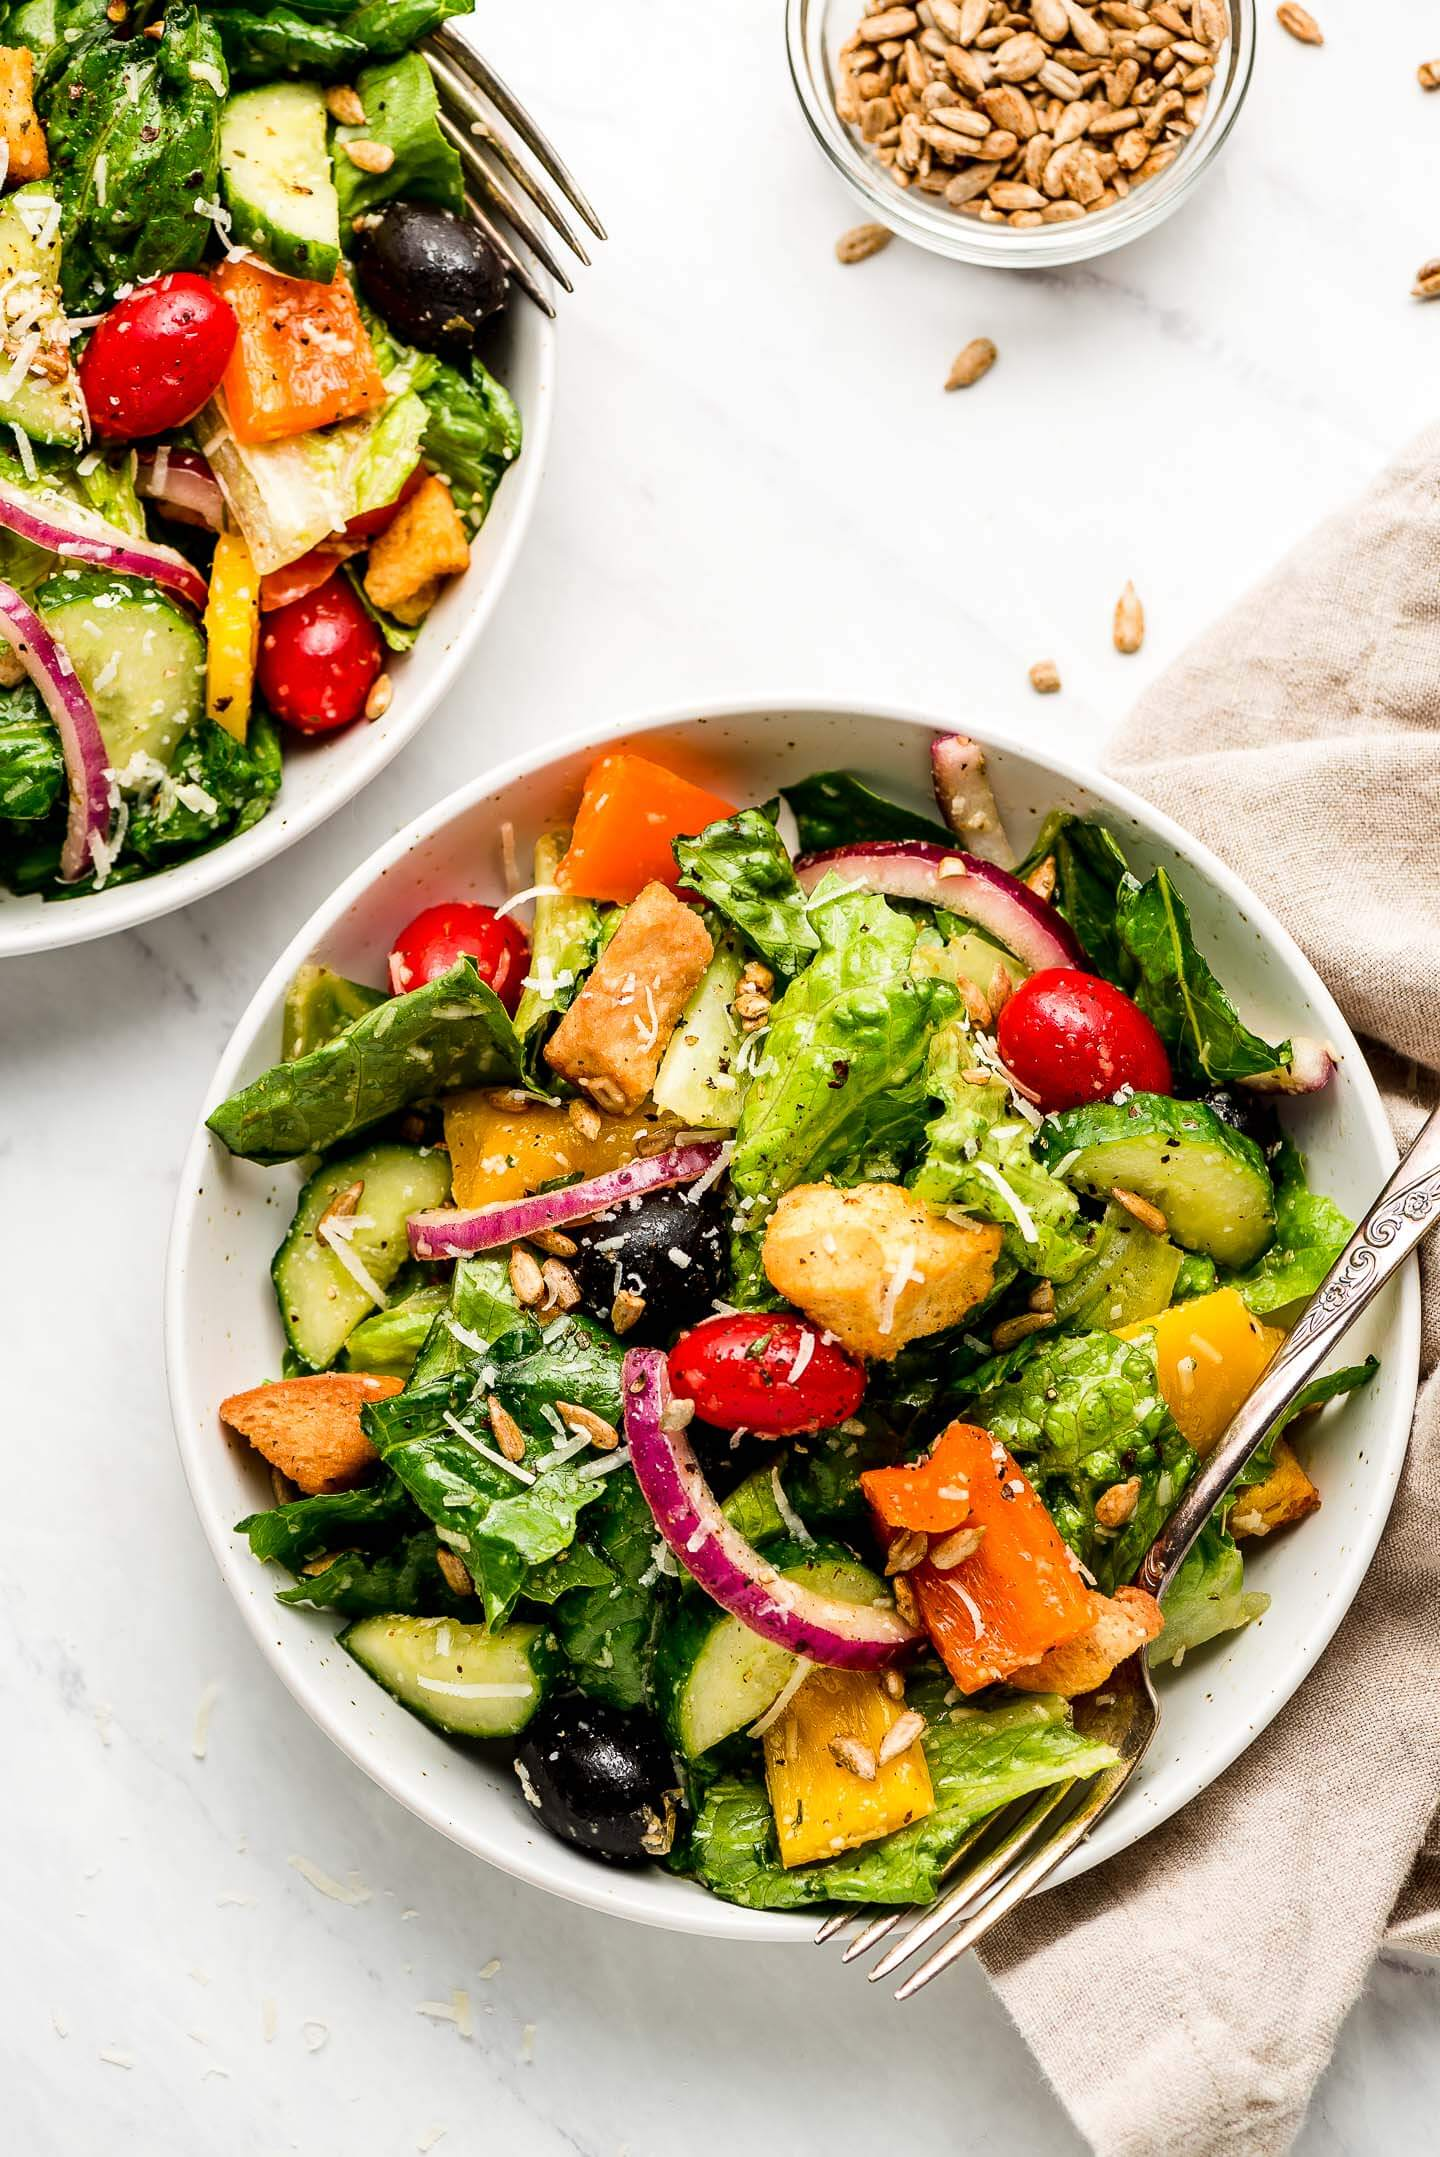 Two bowls of side salads garnished with parmesan cheese.